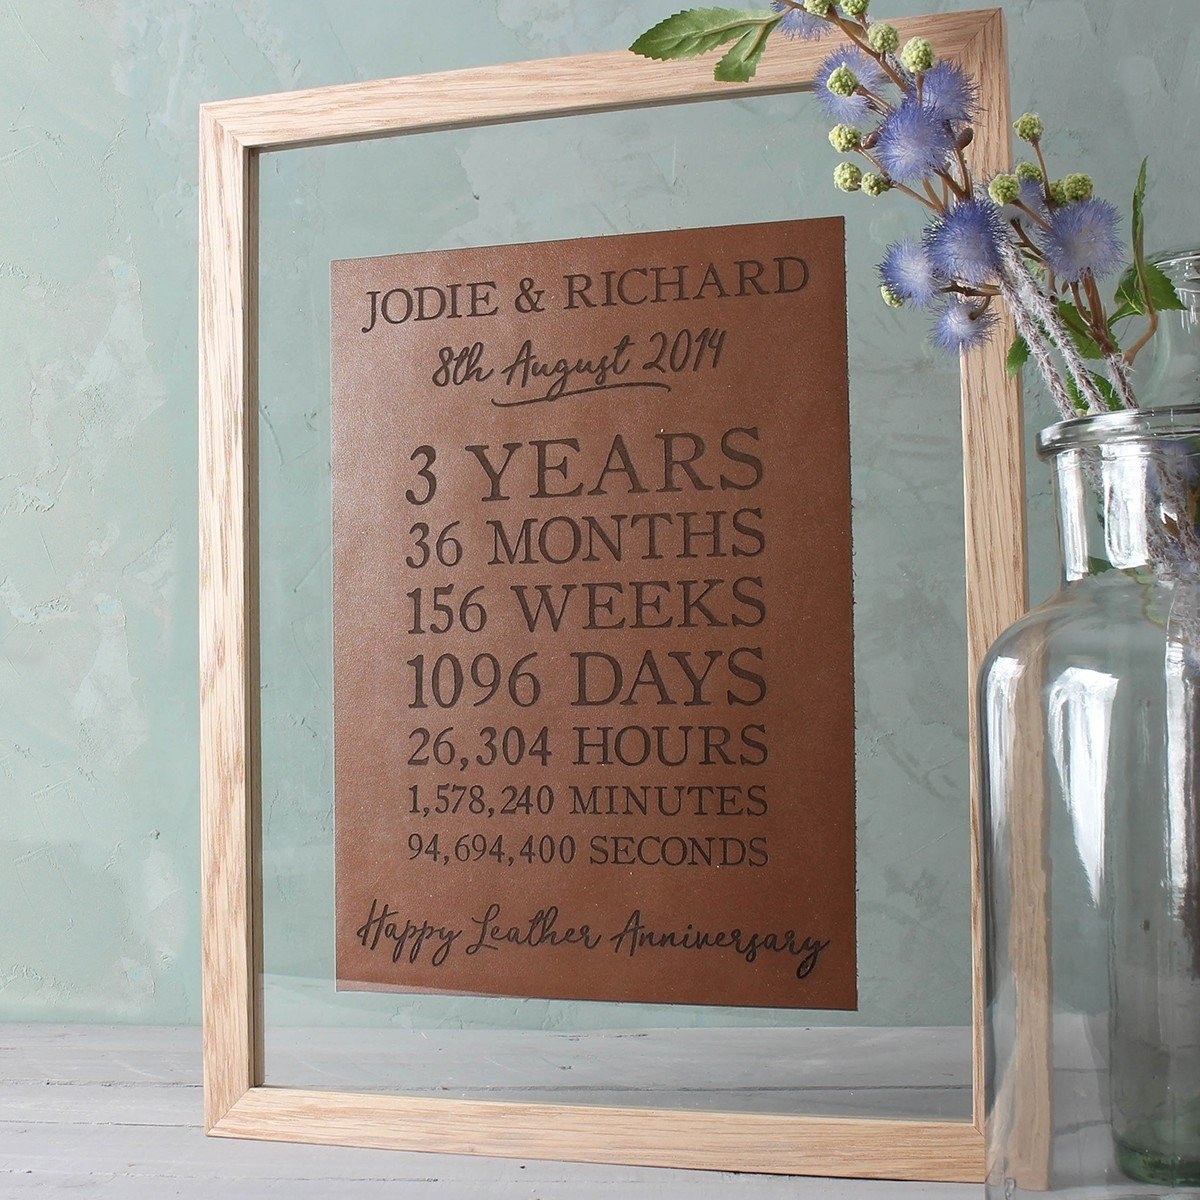 3 Year Anniversary Gift Ideas For Husband  10 Elegant 3Rd Year Anniversary Gift Ideas For Her 2019